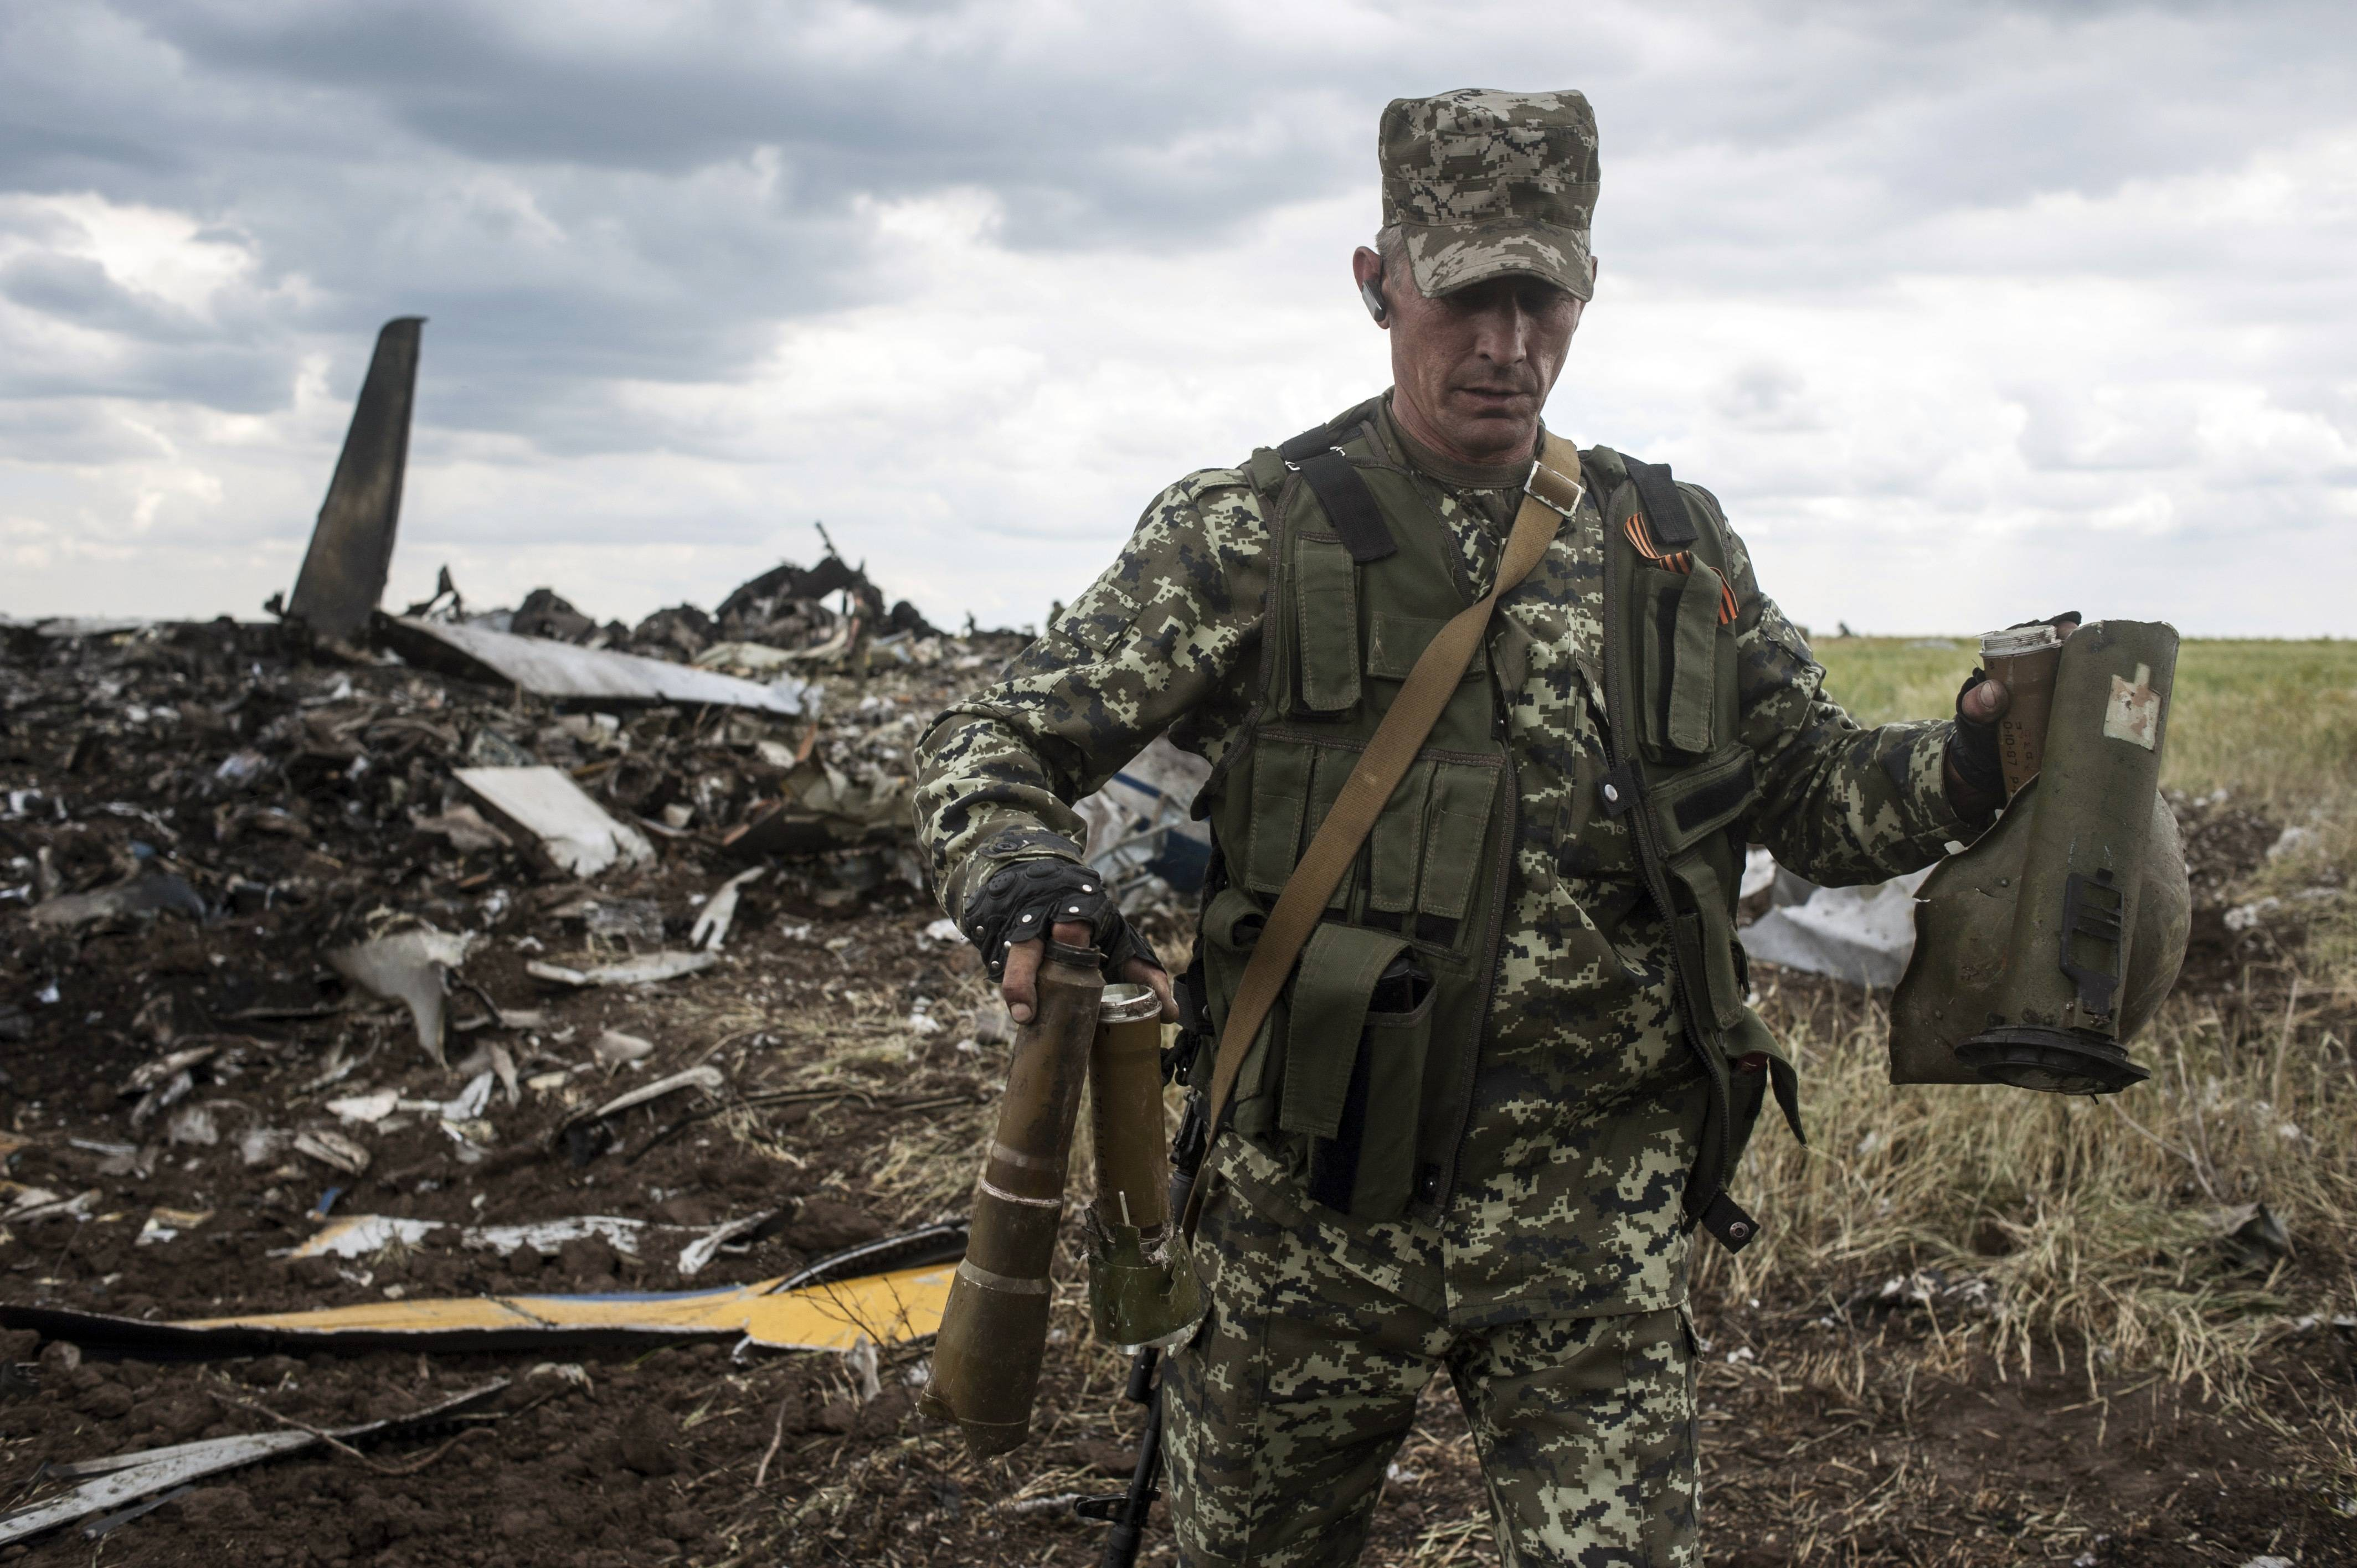 A pro-Russian fighter carries parts of weapons Saturday from the site of remnants of a downed Ukrainian army aircraft Il-76 at the airport near Luhansk, Ukraine.